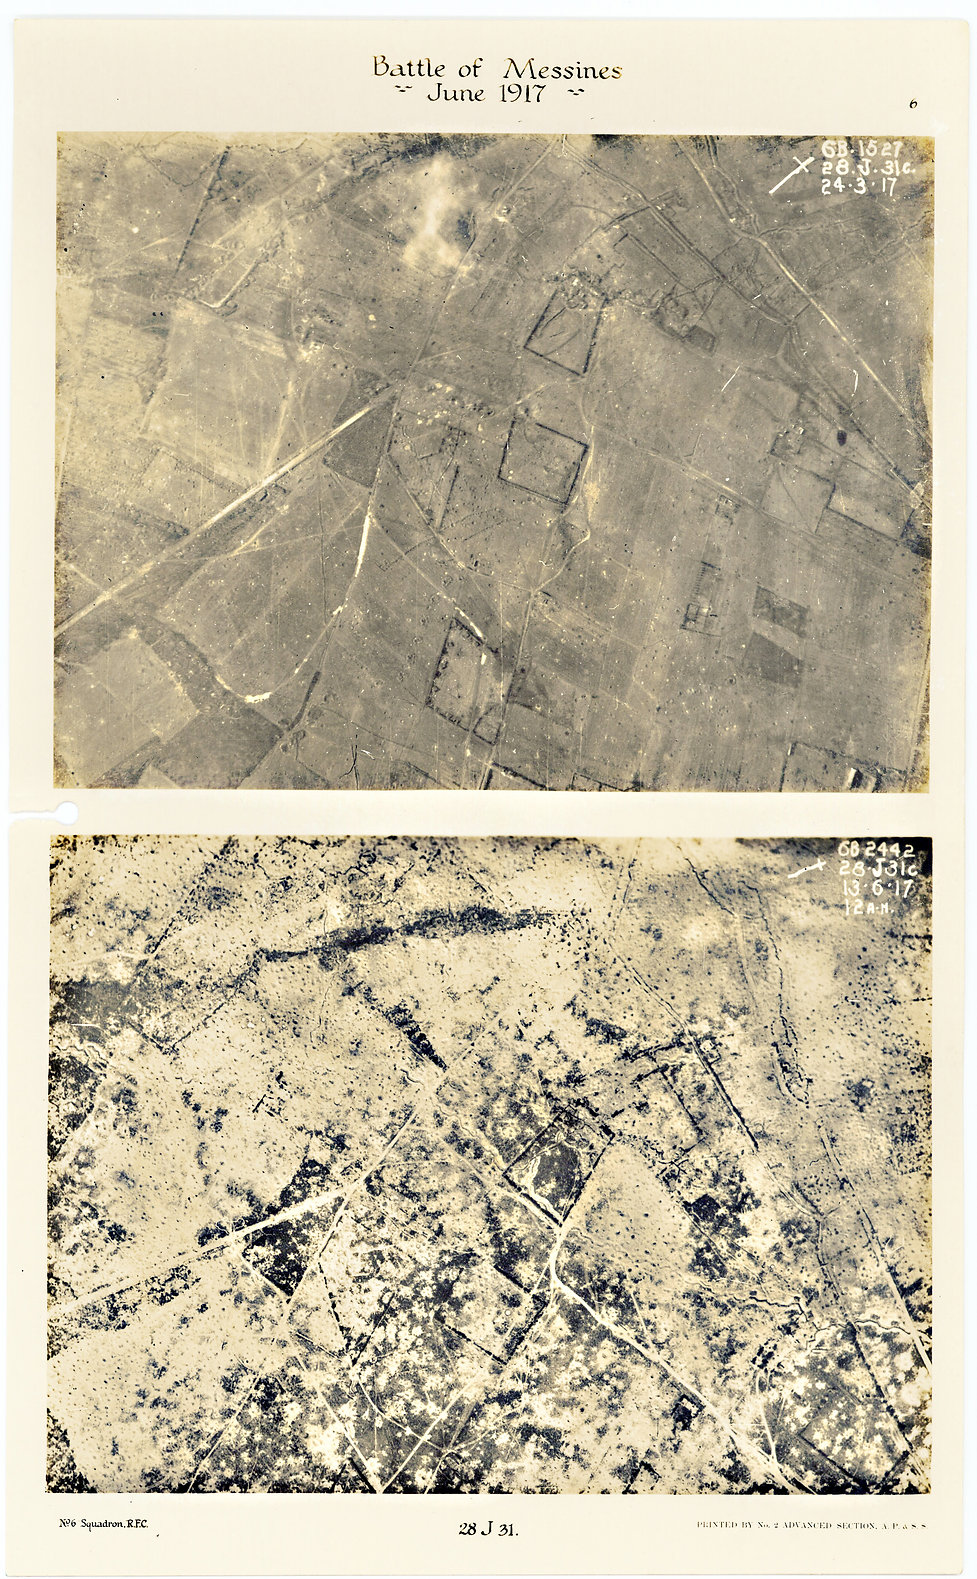 6 Squadron aerial photographs east of Battle Wood, before and after the Battle of Messines in June 1917